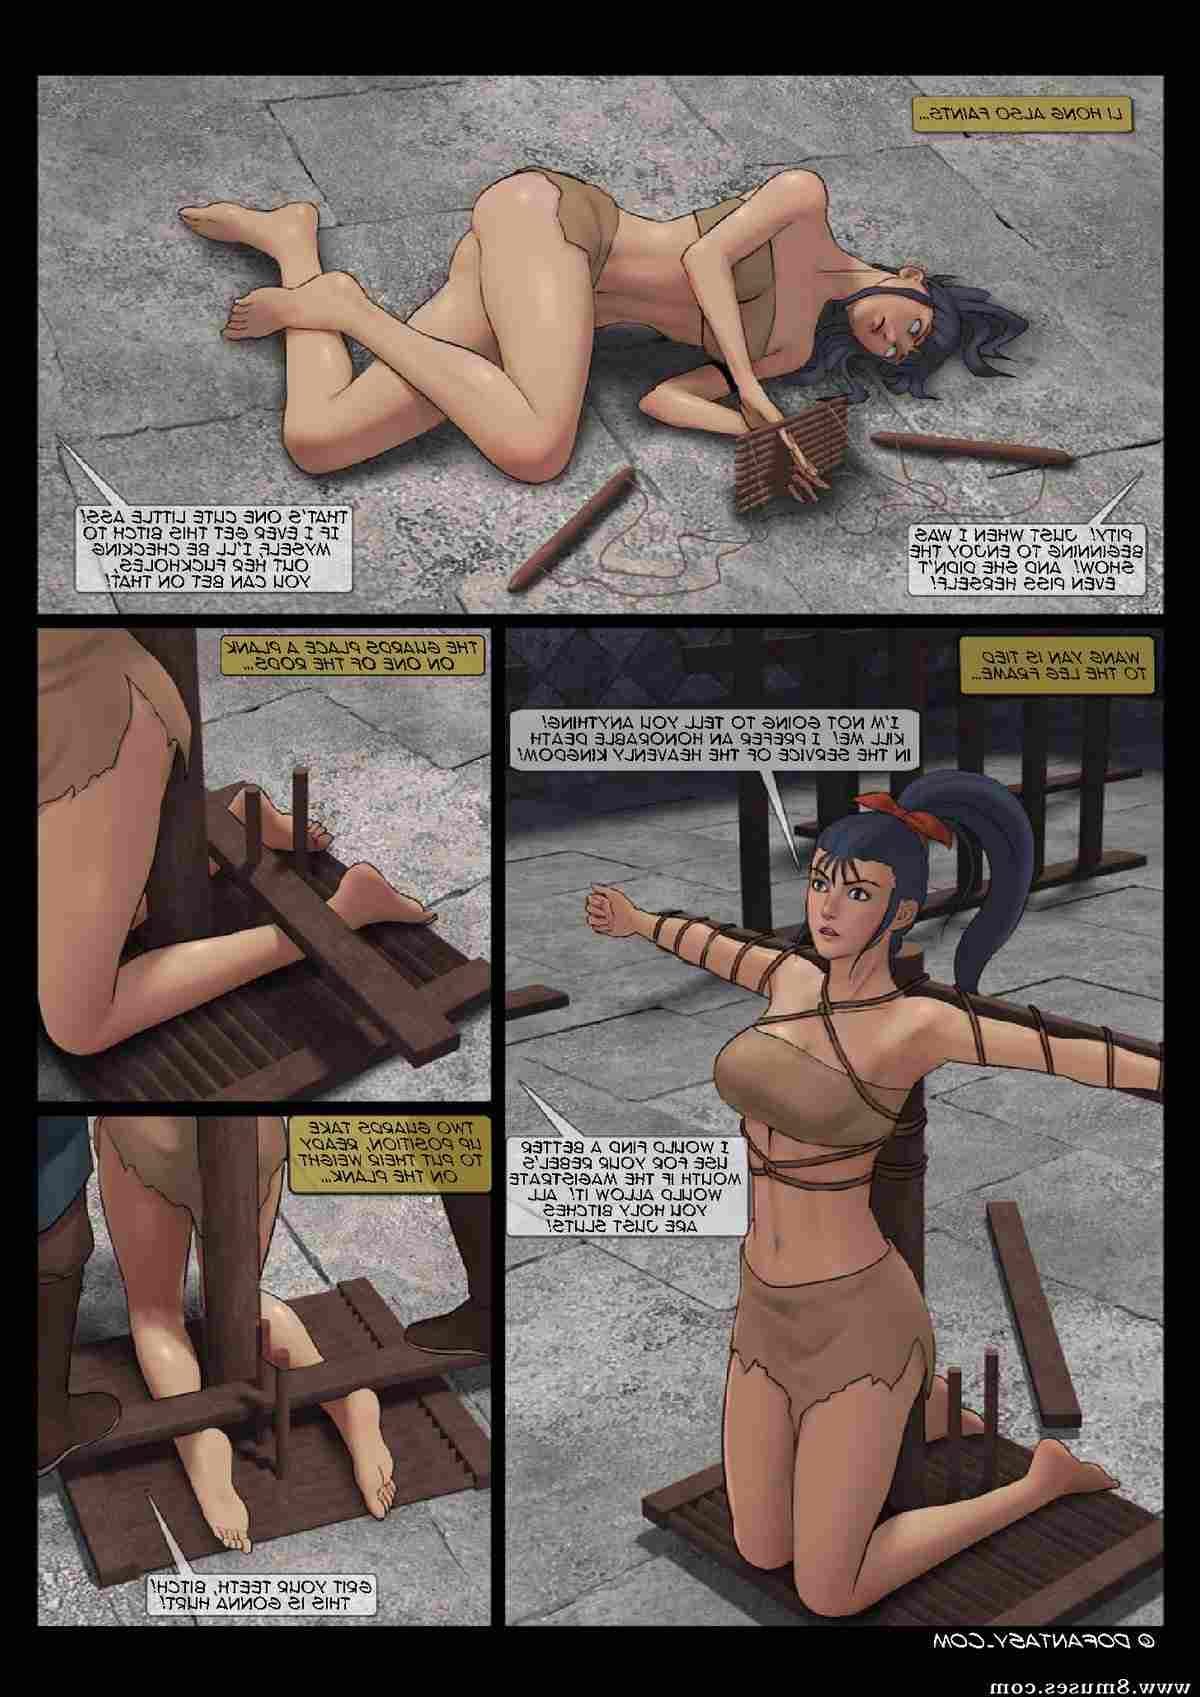 Fansadox-Comics/401-500/Fansadox-412-Feather-Female-General-2 Fansadox_412_-_Feather_-_Female_General_2__8muses_-_Sex_and_Porn_Comics_17.jpg